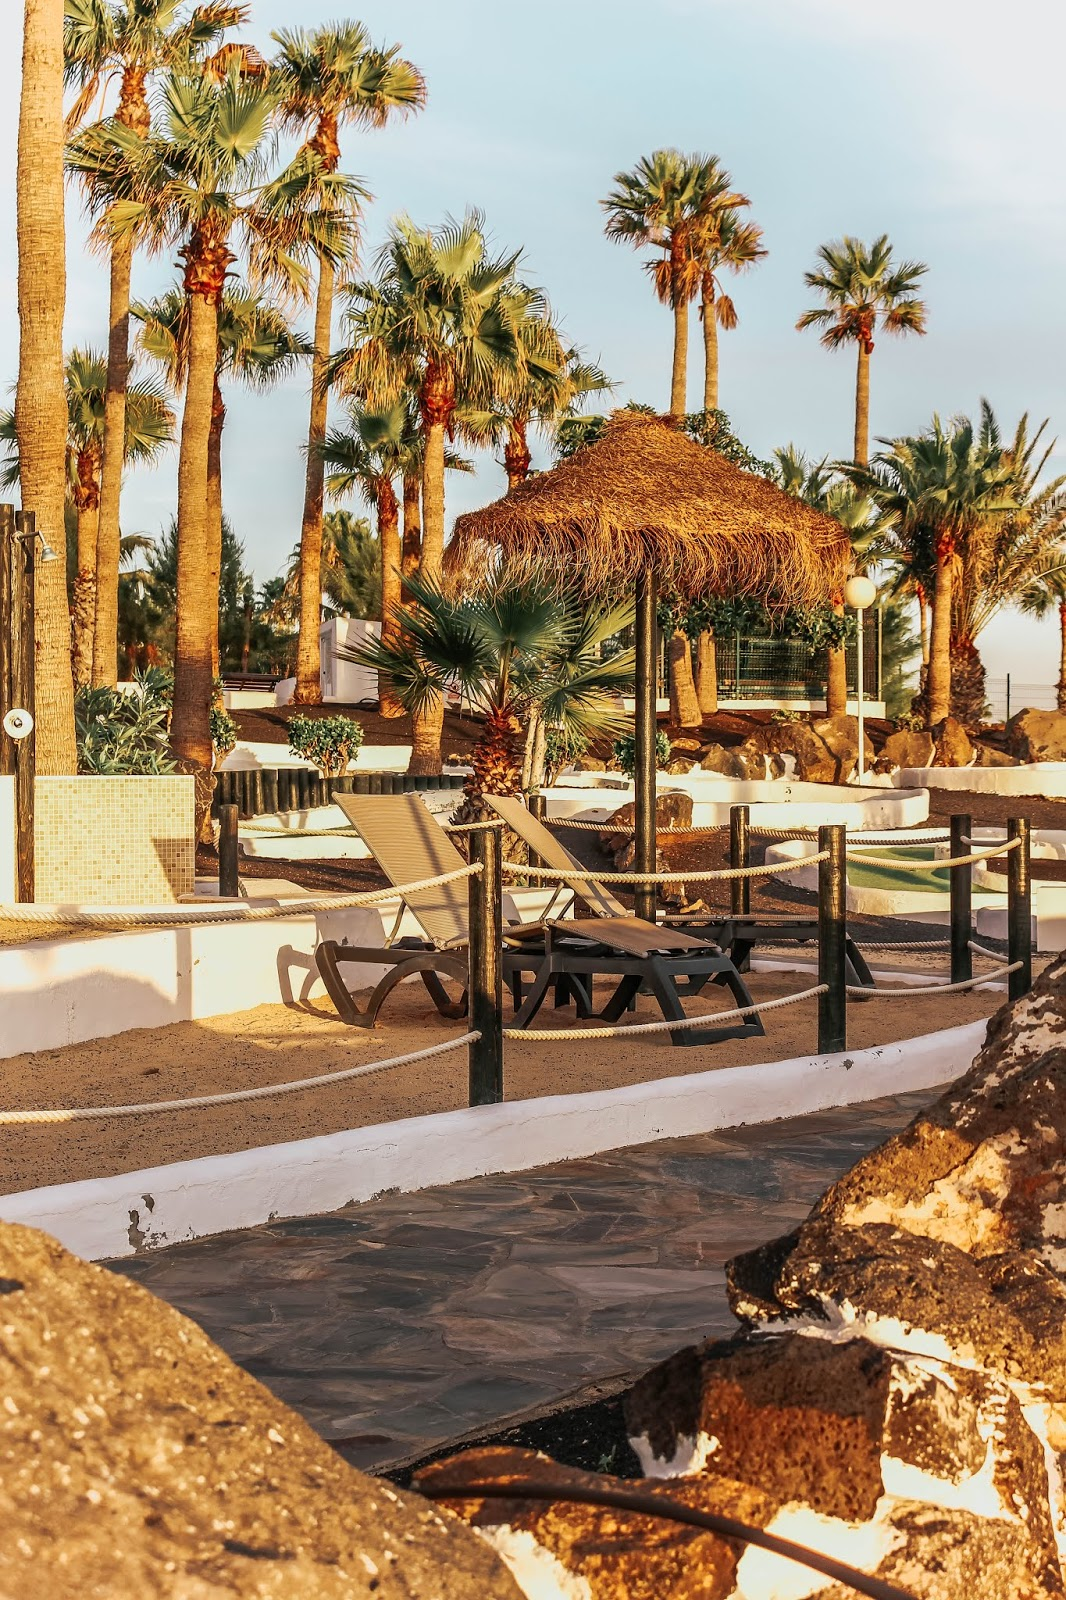 H10 Hotels Lanzarote Spain Review